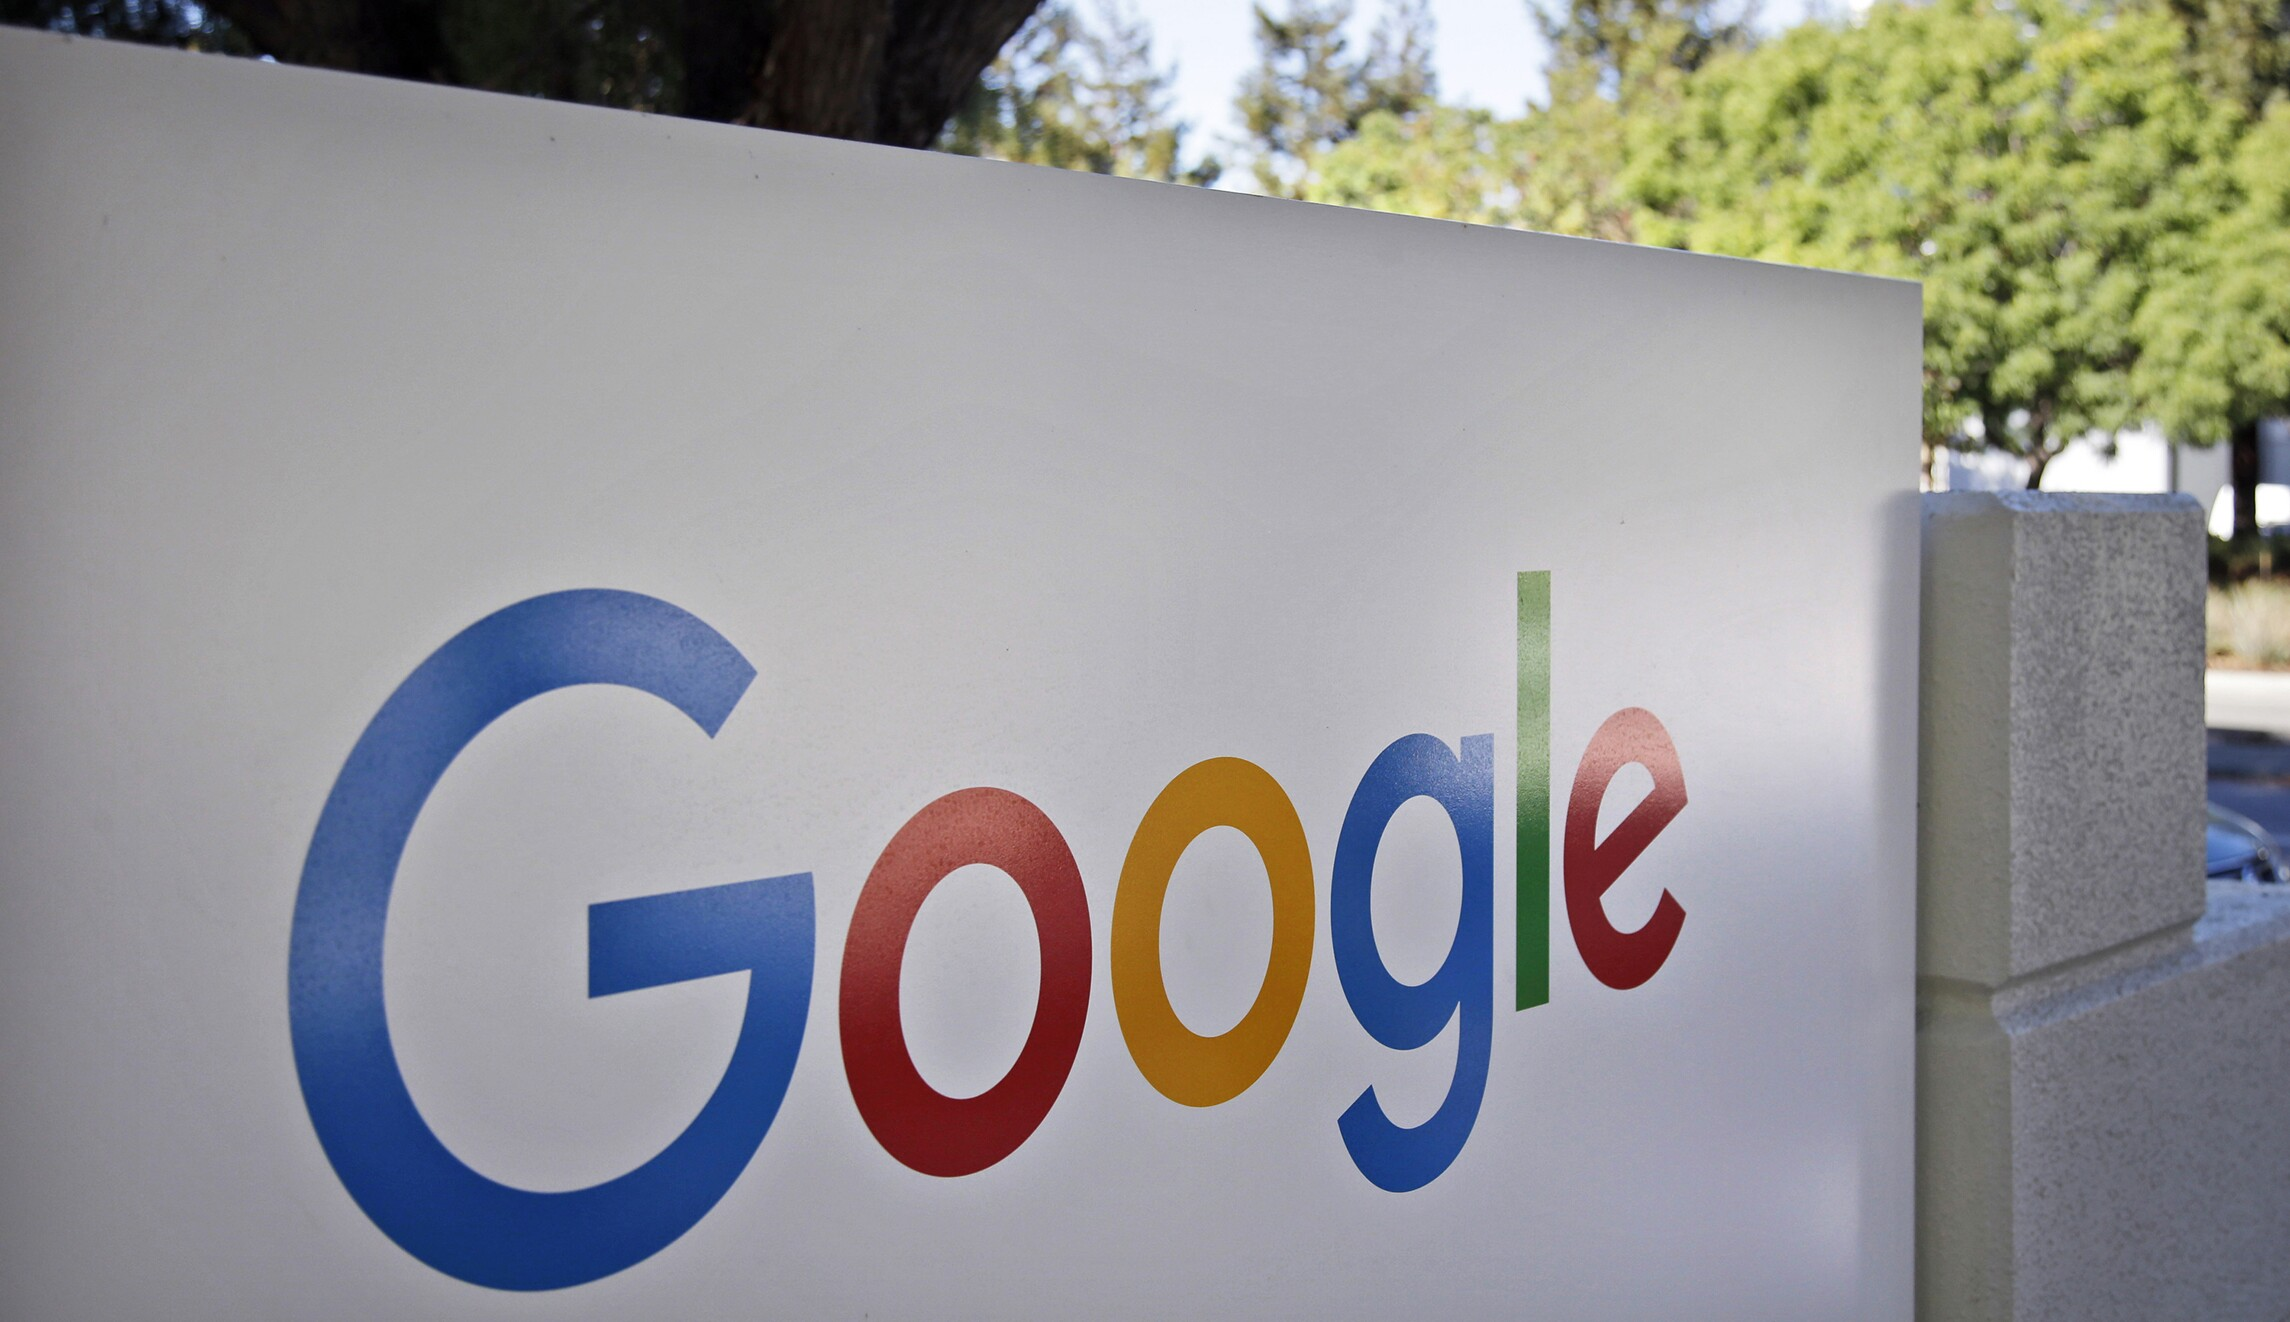 Google fires employee for daring to recognize men and women